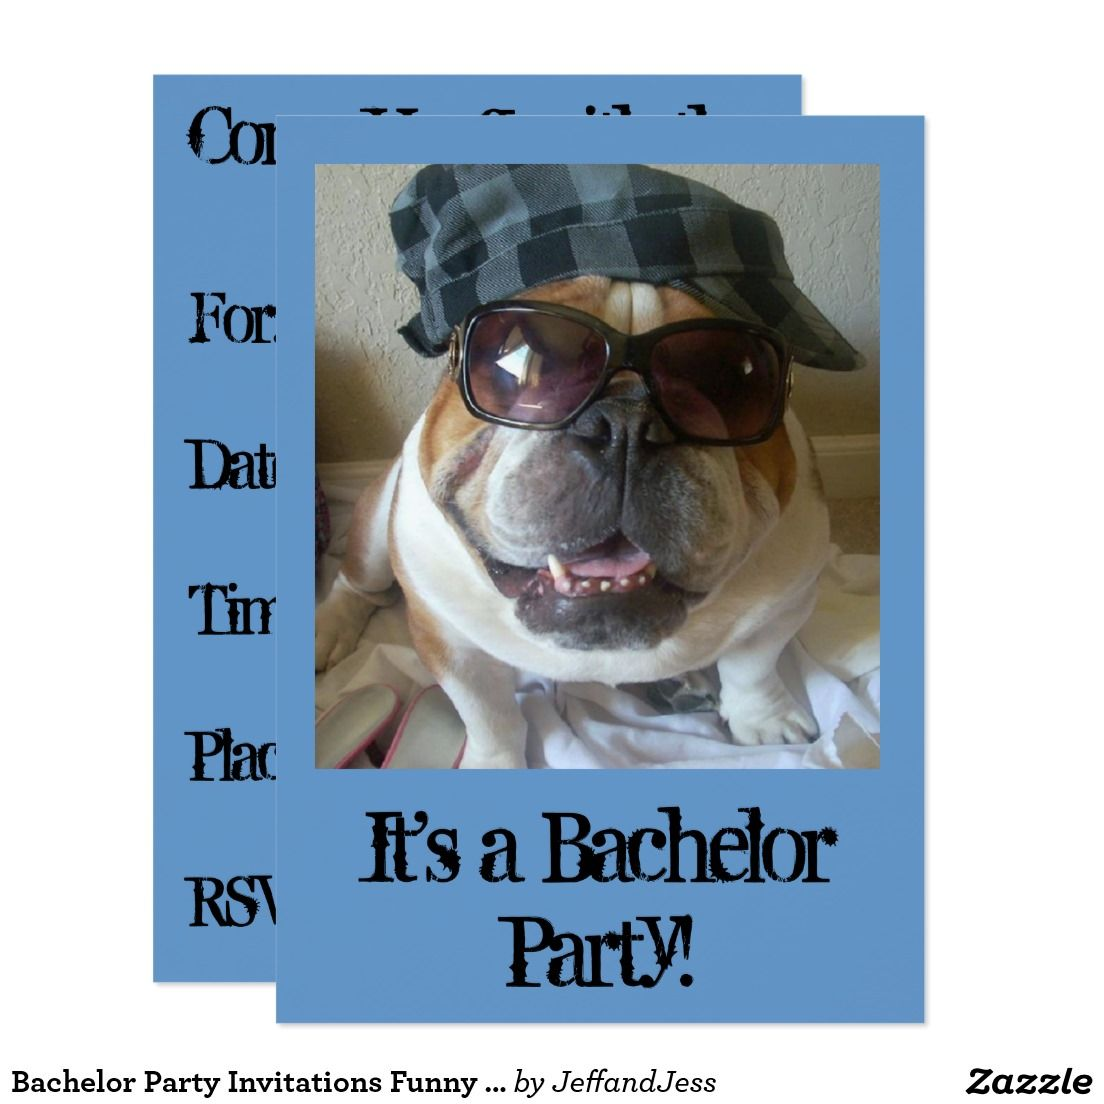 Bachelor Party Invitations Funny English Bulldog | Bachelor Party ...